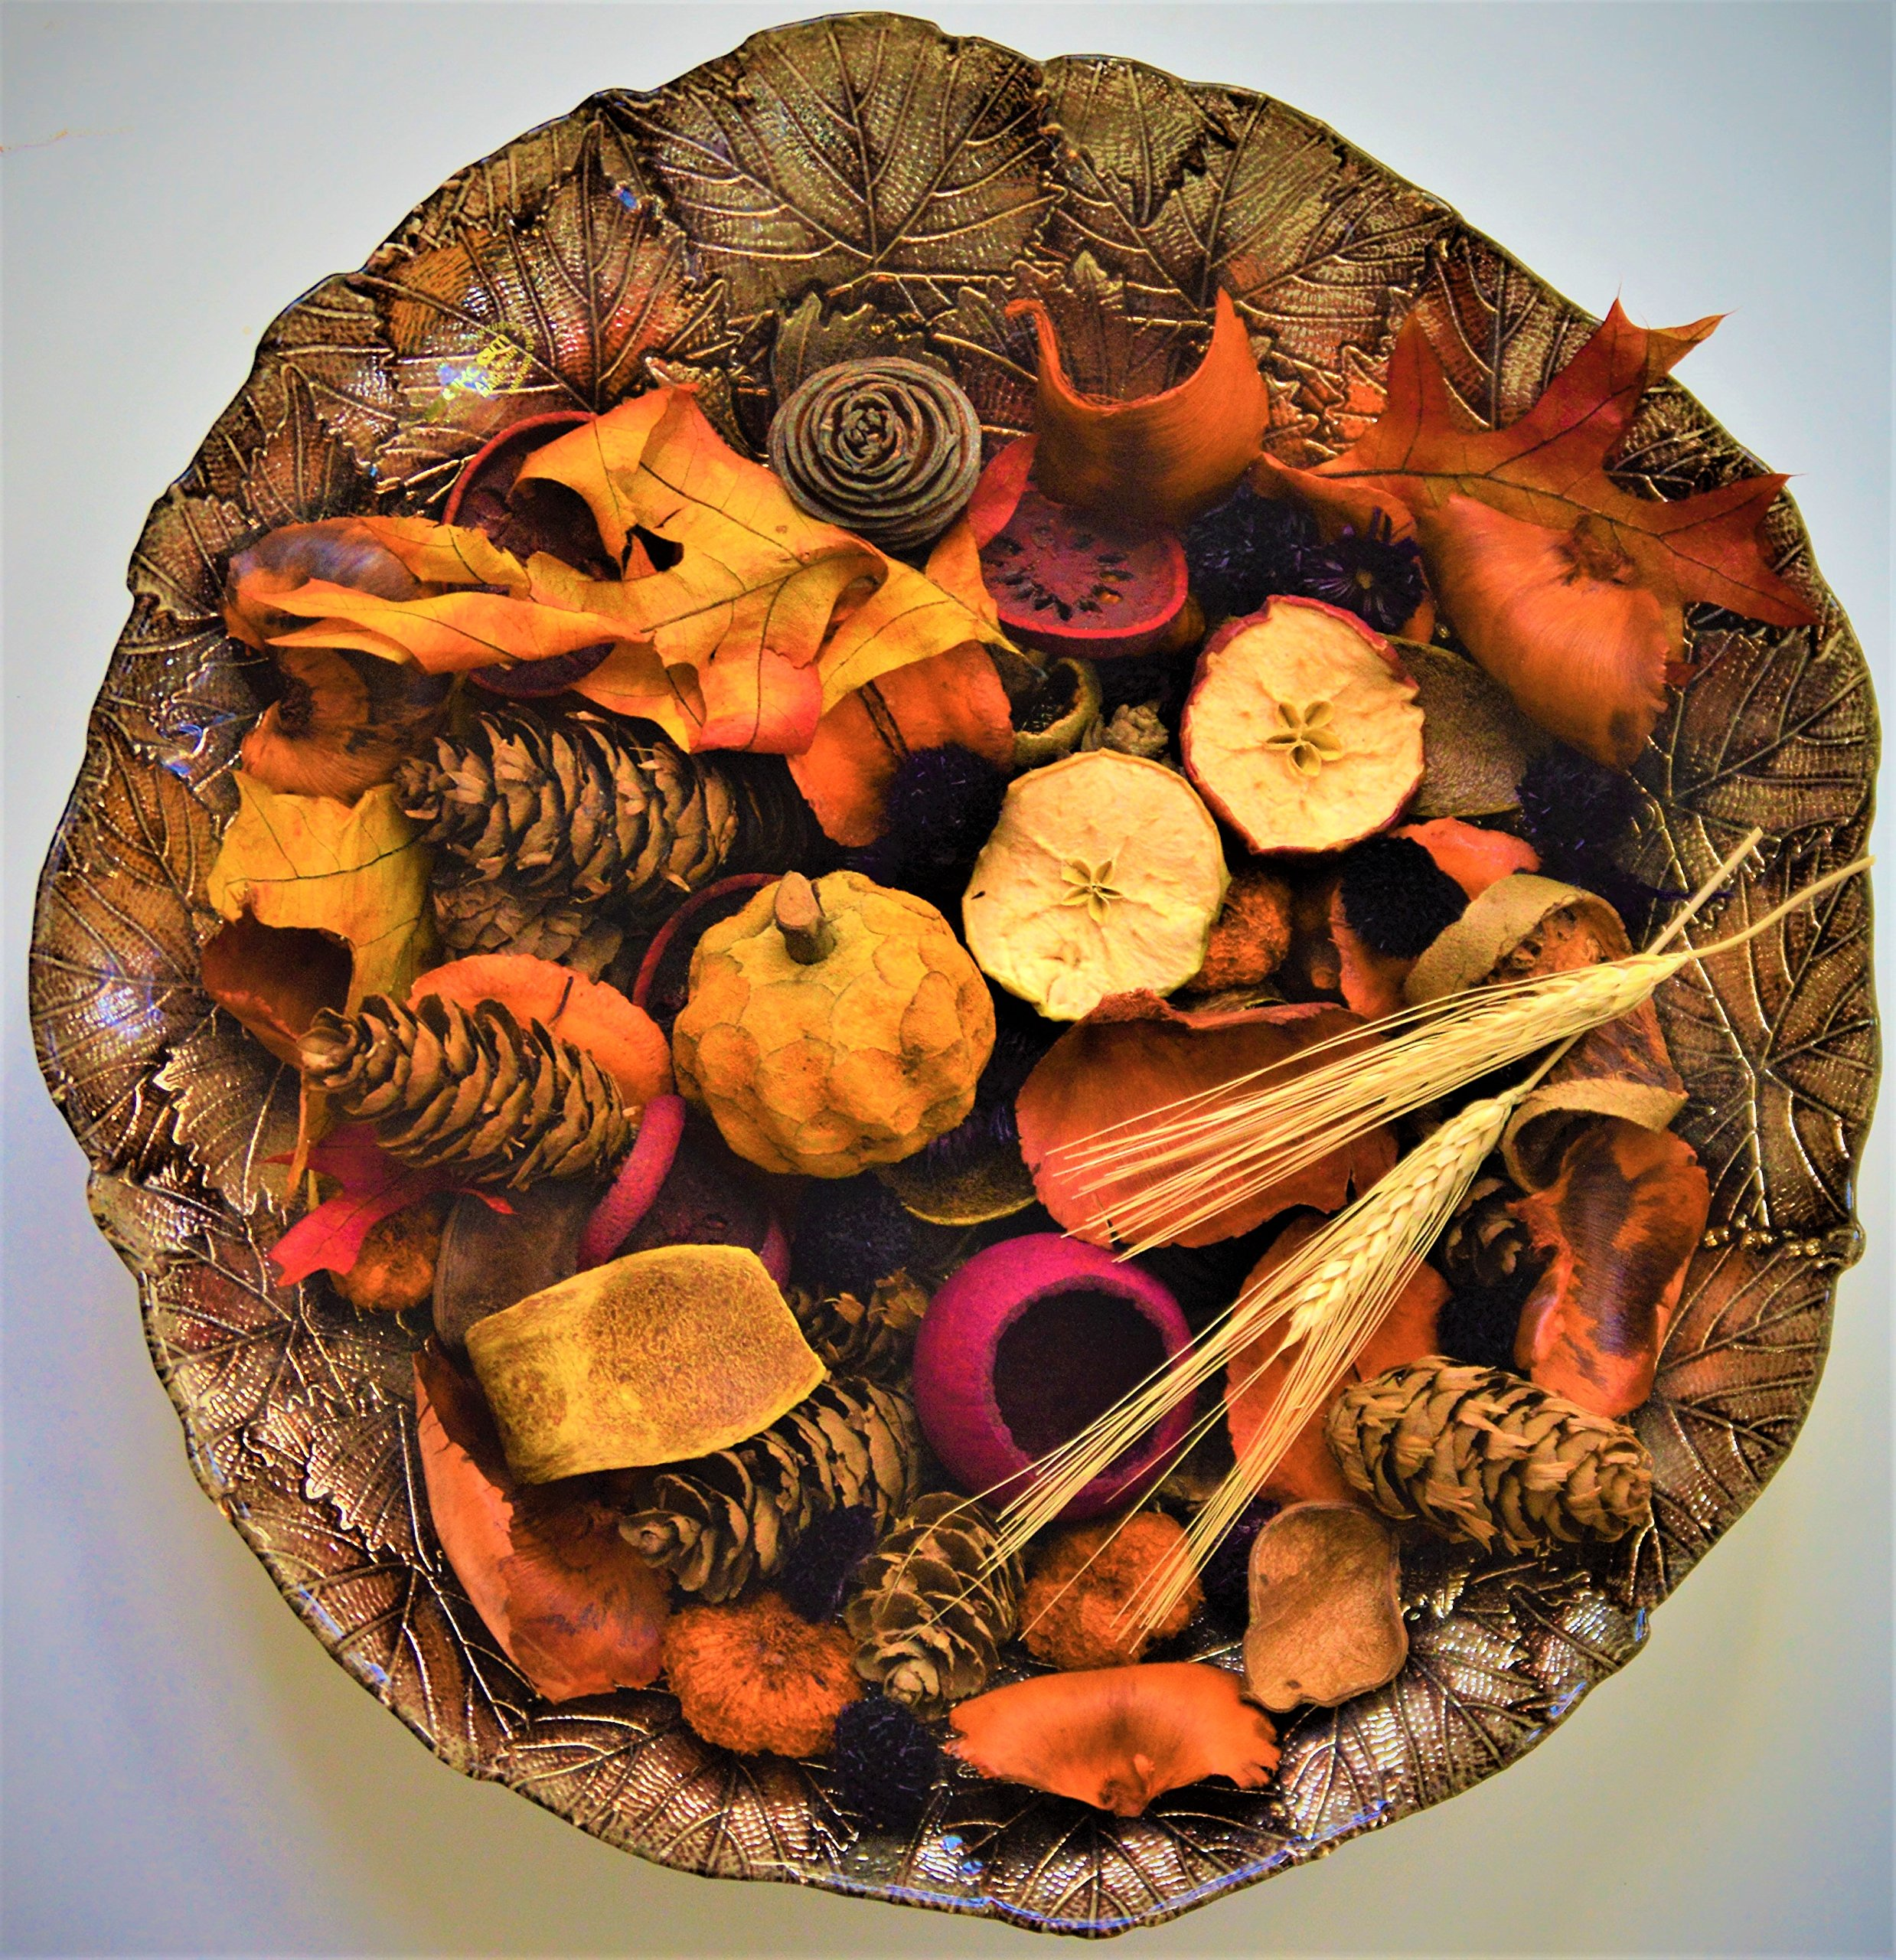 Manu Home Autumn Harvest Potpourri ~12 oz Potpourri Bag filled with the Fresh scent of our exclusive Fall Festival AppleTart fragrance ~ Made with Beautiful natural botanicals and Essential Oils by Manu Home